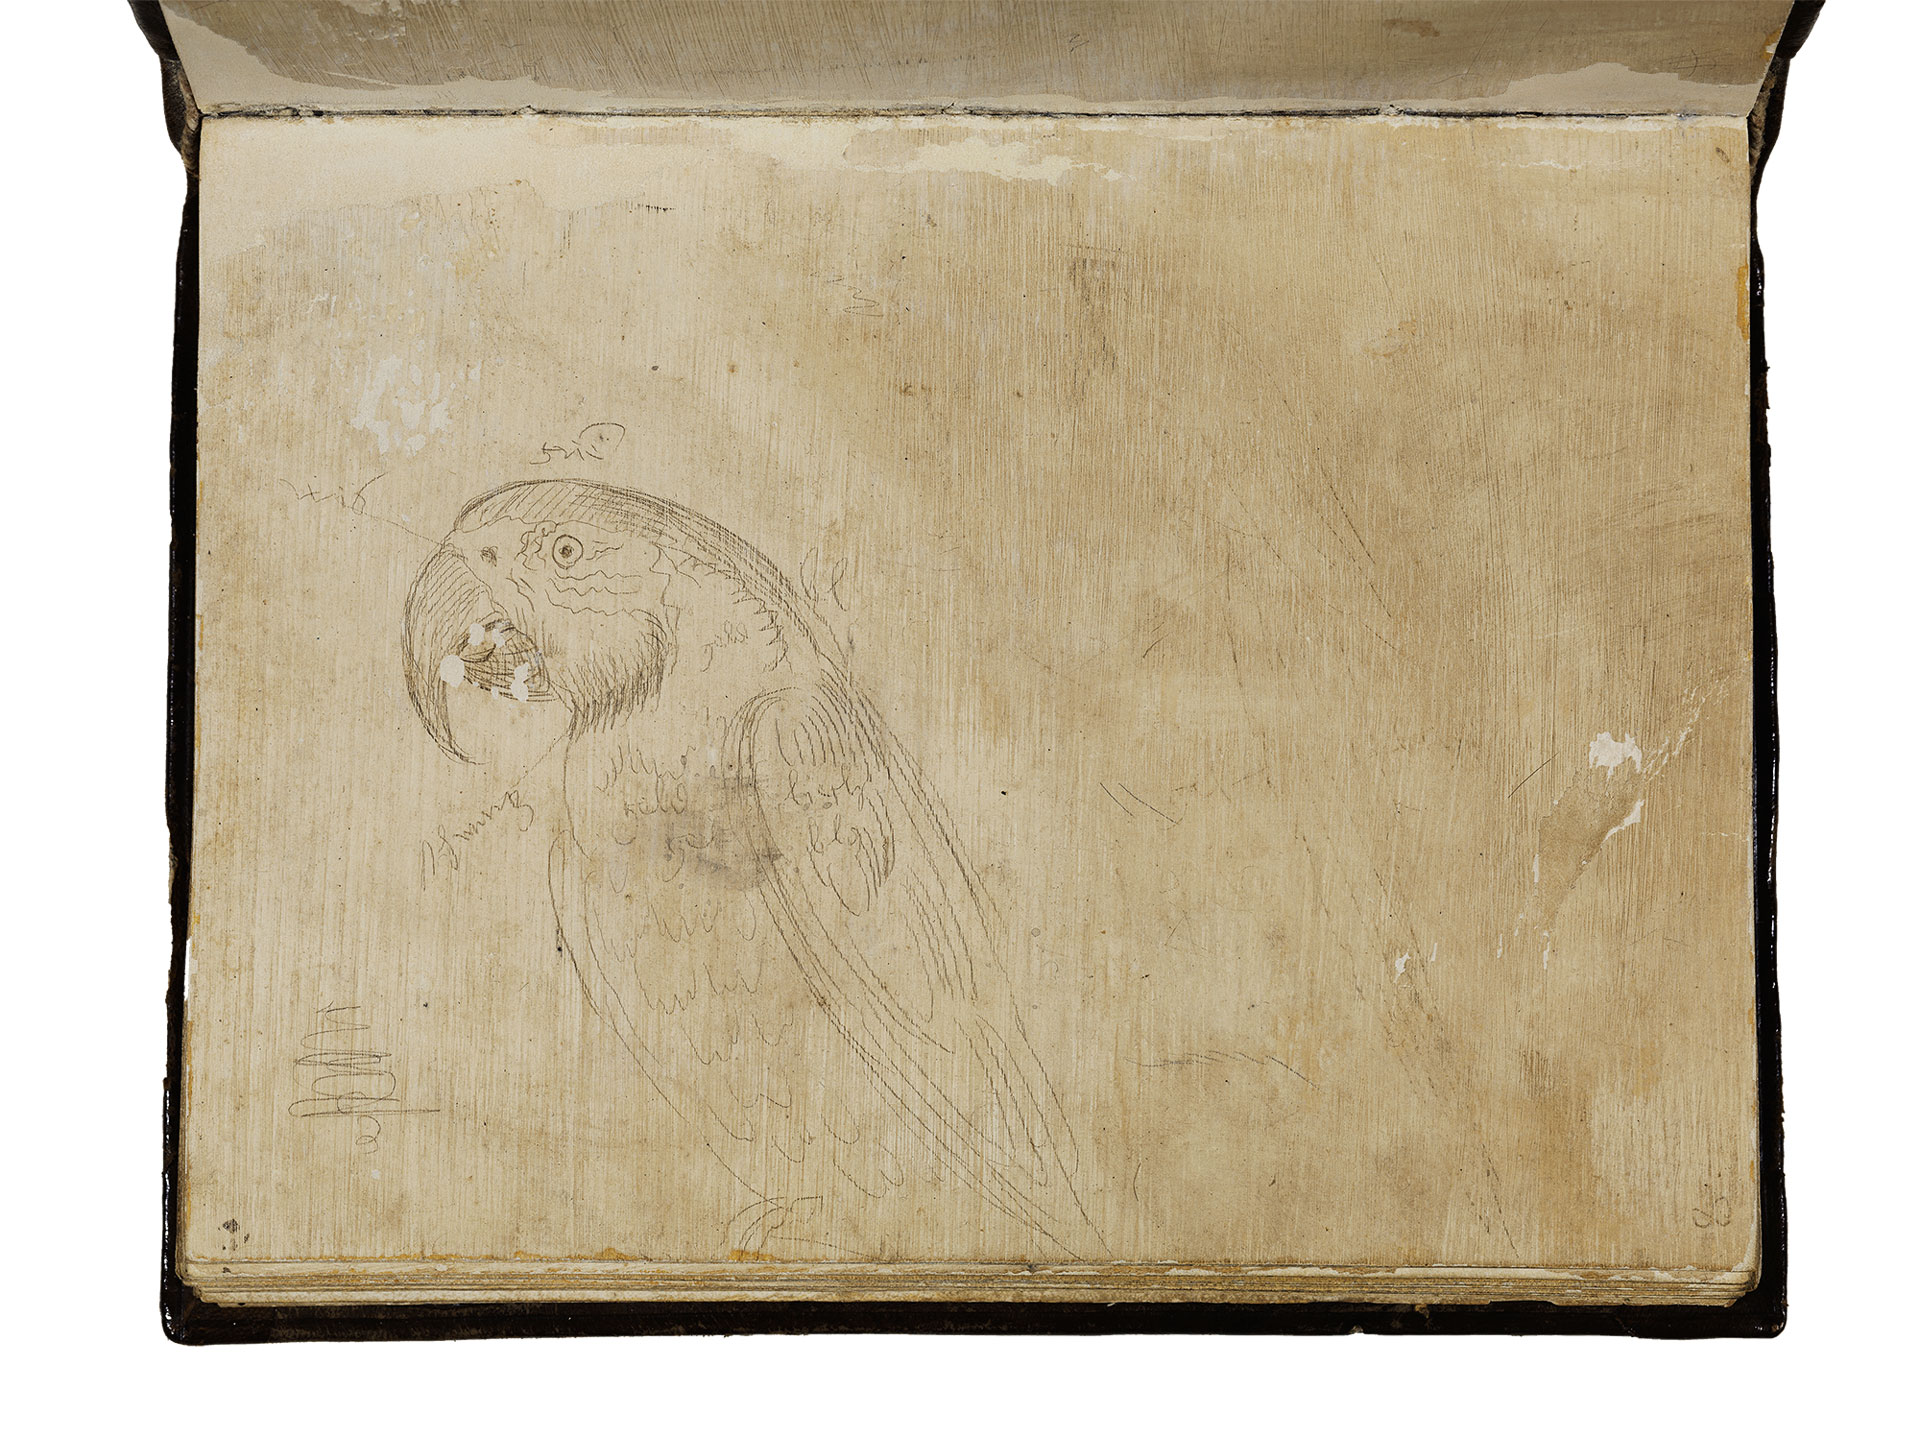 Image of a drawing of a Parrot by Hans Baldung Grien, taken from his Karlsruher Sketchbook.